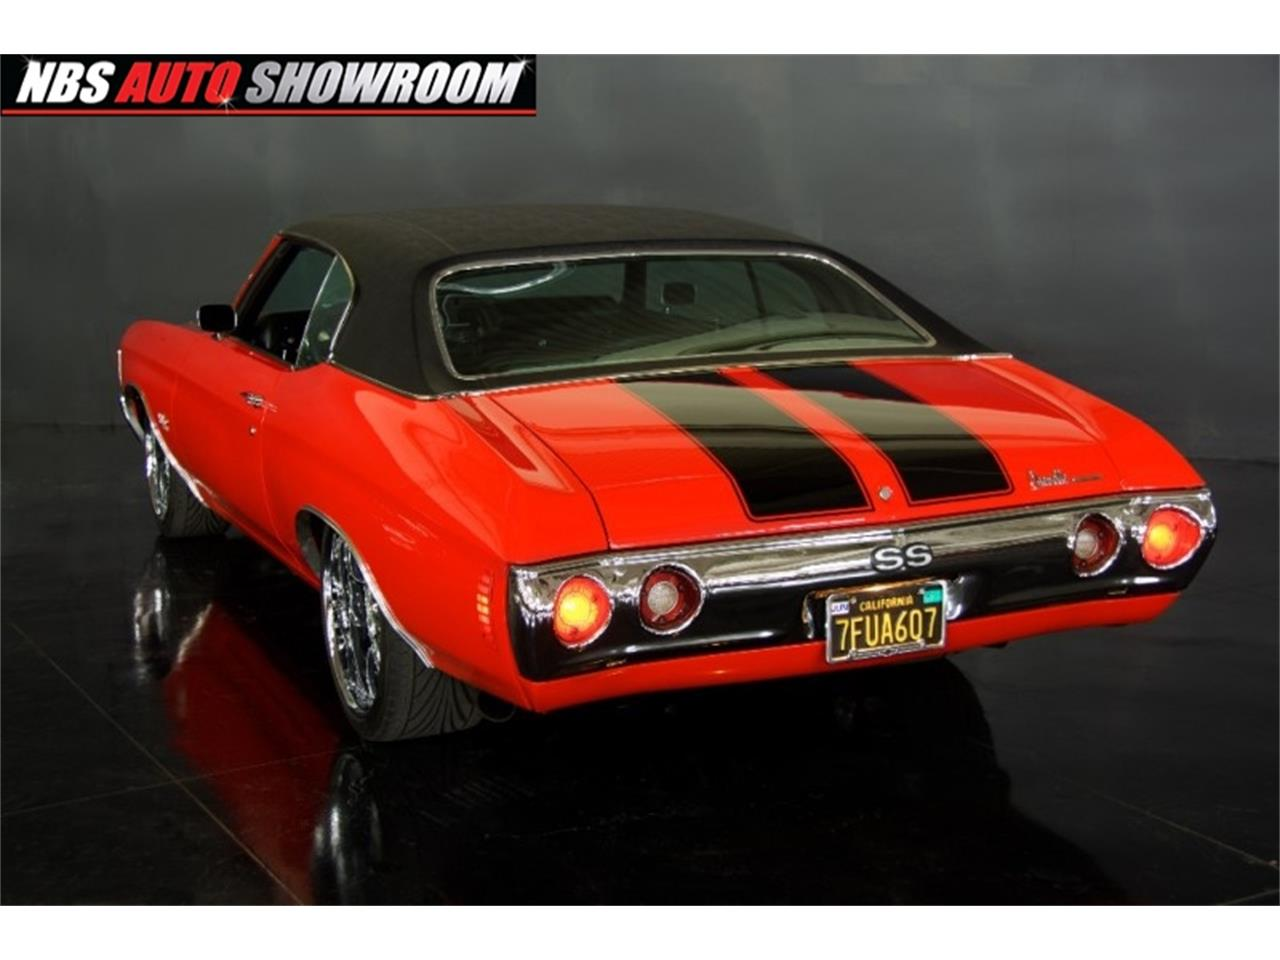 Large Picture of Classic '72 Chevelle - $70,067.00 Offered by NBS Auto Showroom - KCKI